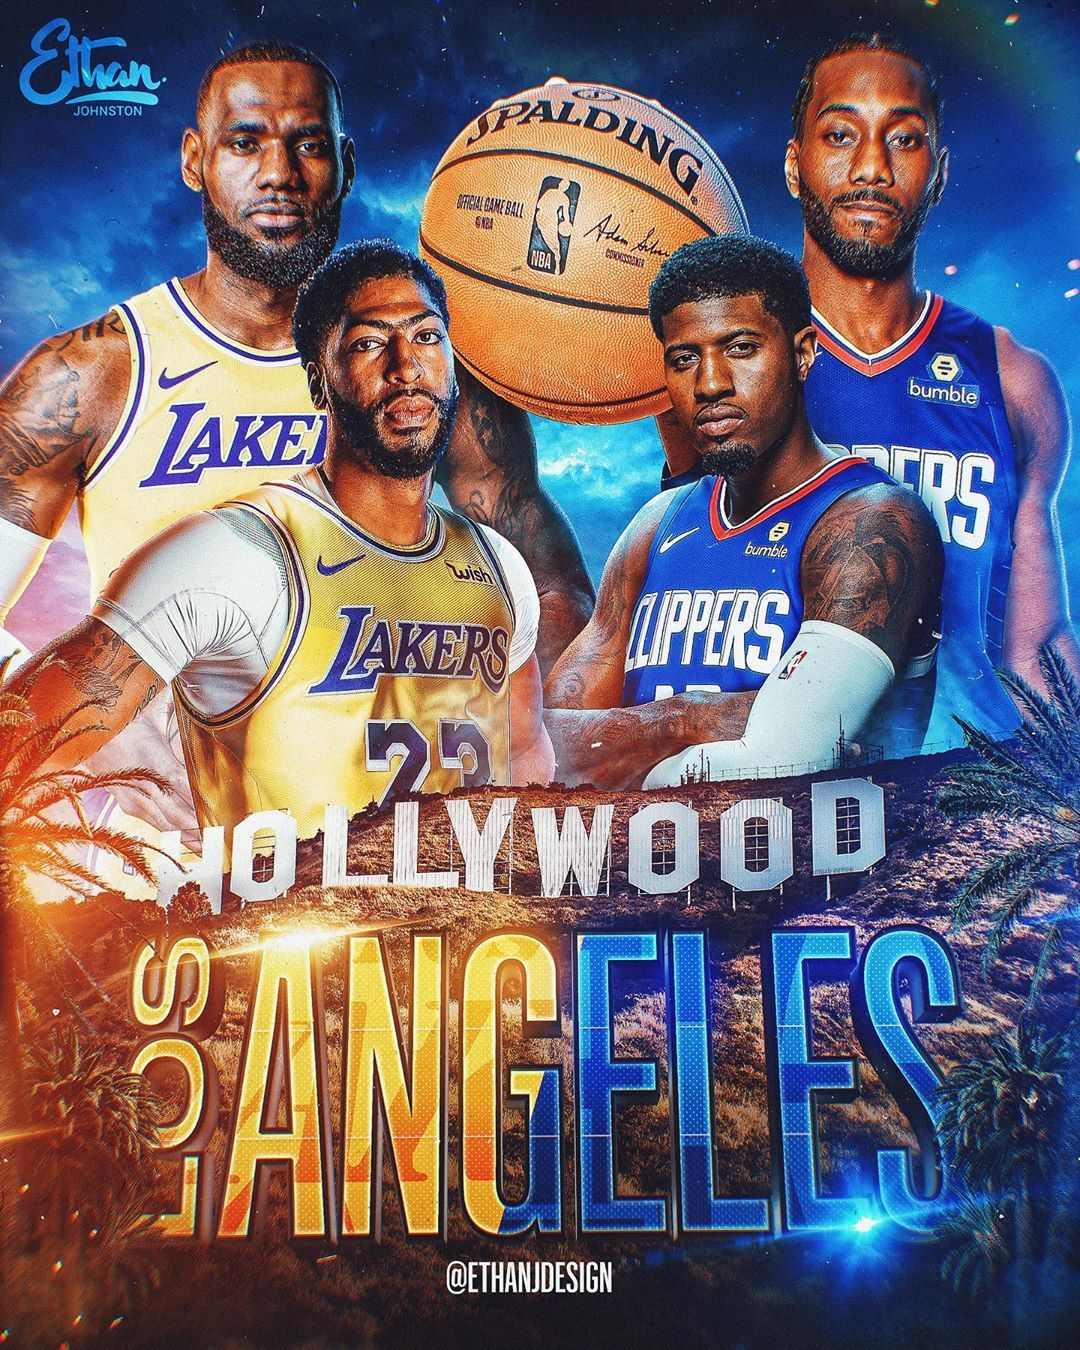 Image May Contain One Or More People And People Playing Sports Lakers Vs Clippers Lakers Vs Nba Pictures